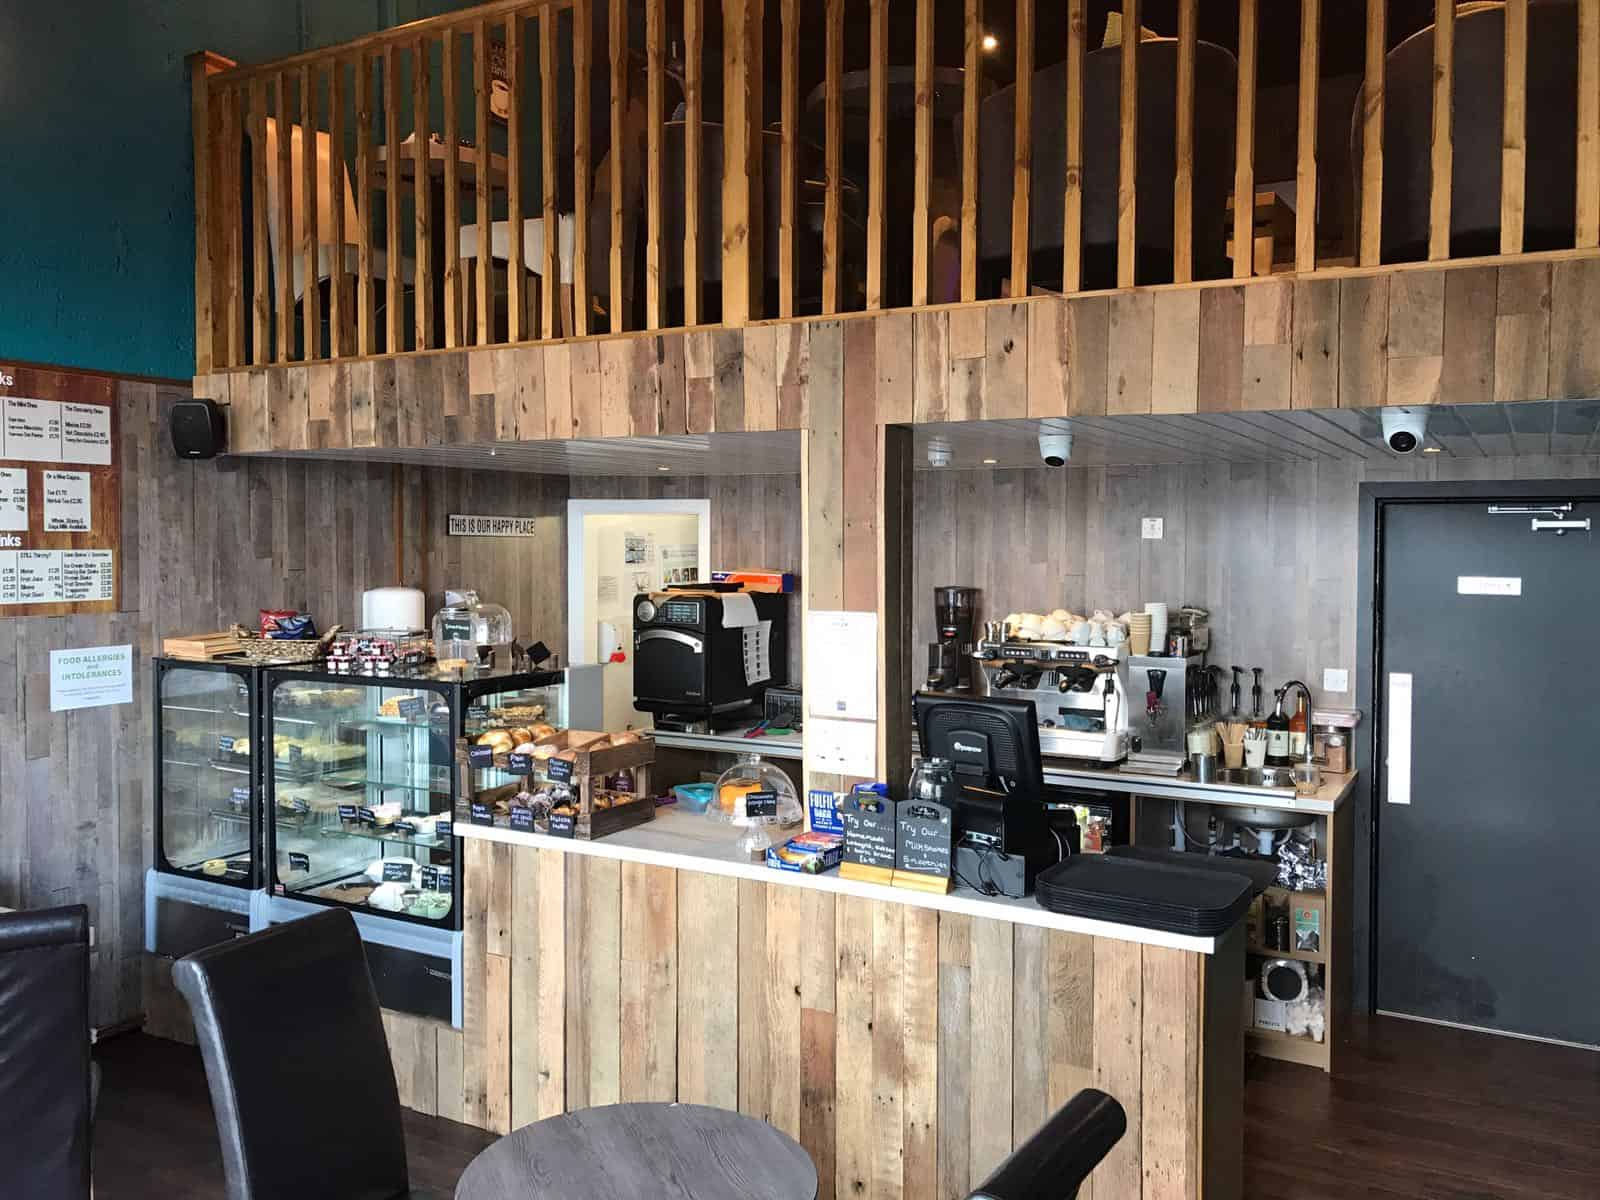 Martin Food Equipment 245 COFFEE CABIN MONKSTOWN OPENS NEW COFFEE SHOP News